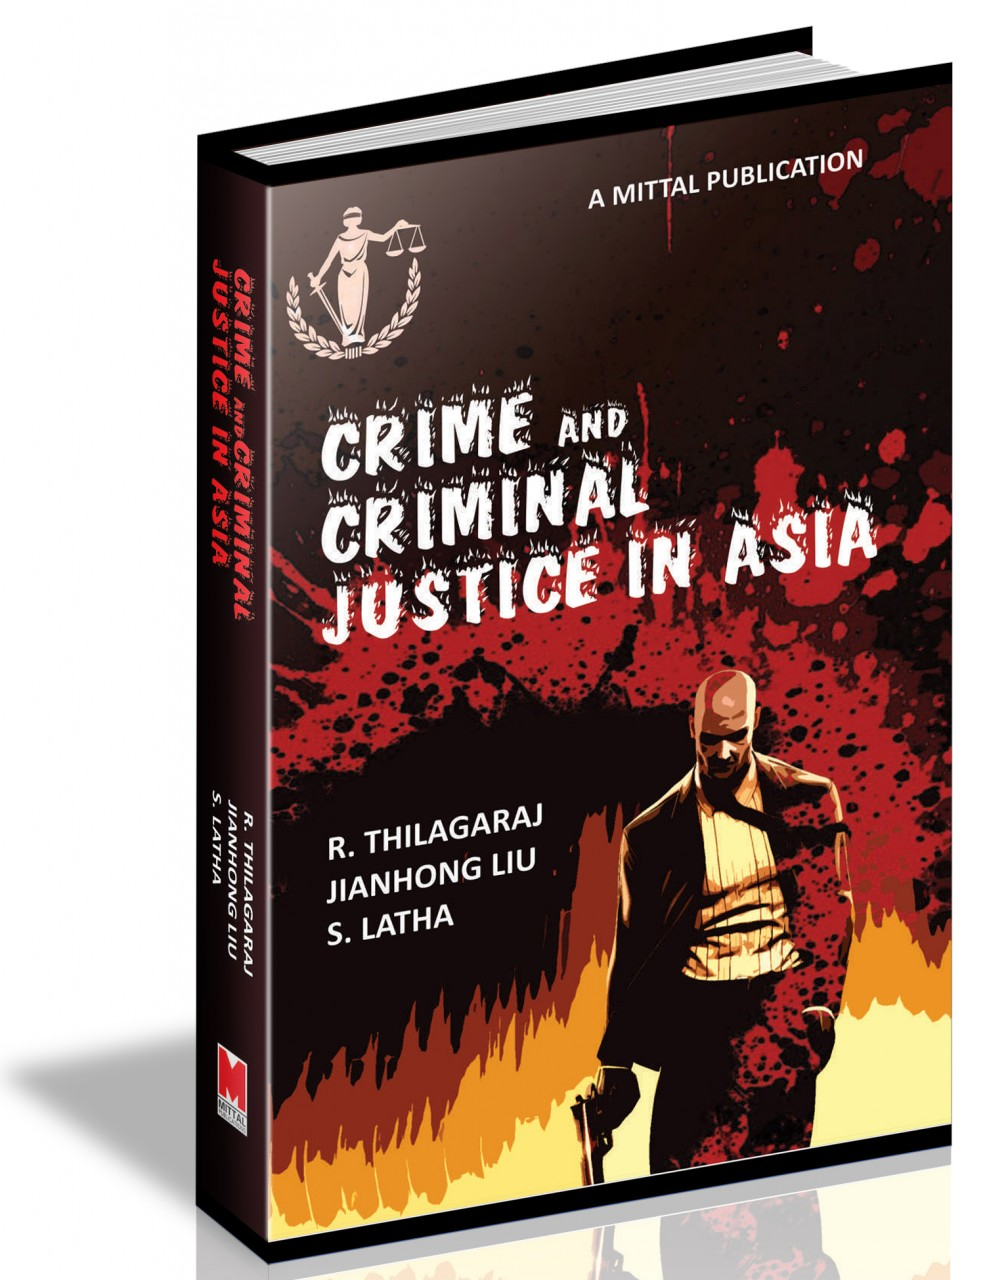 crime-and-criminal-justice-in-asia